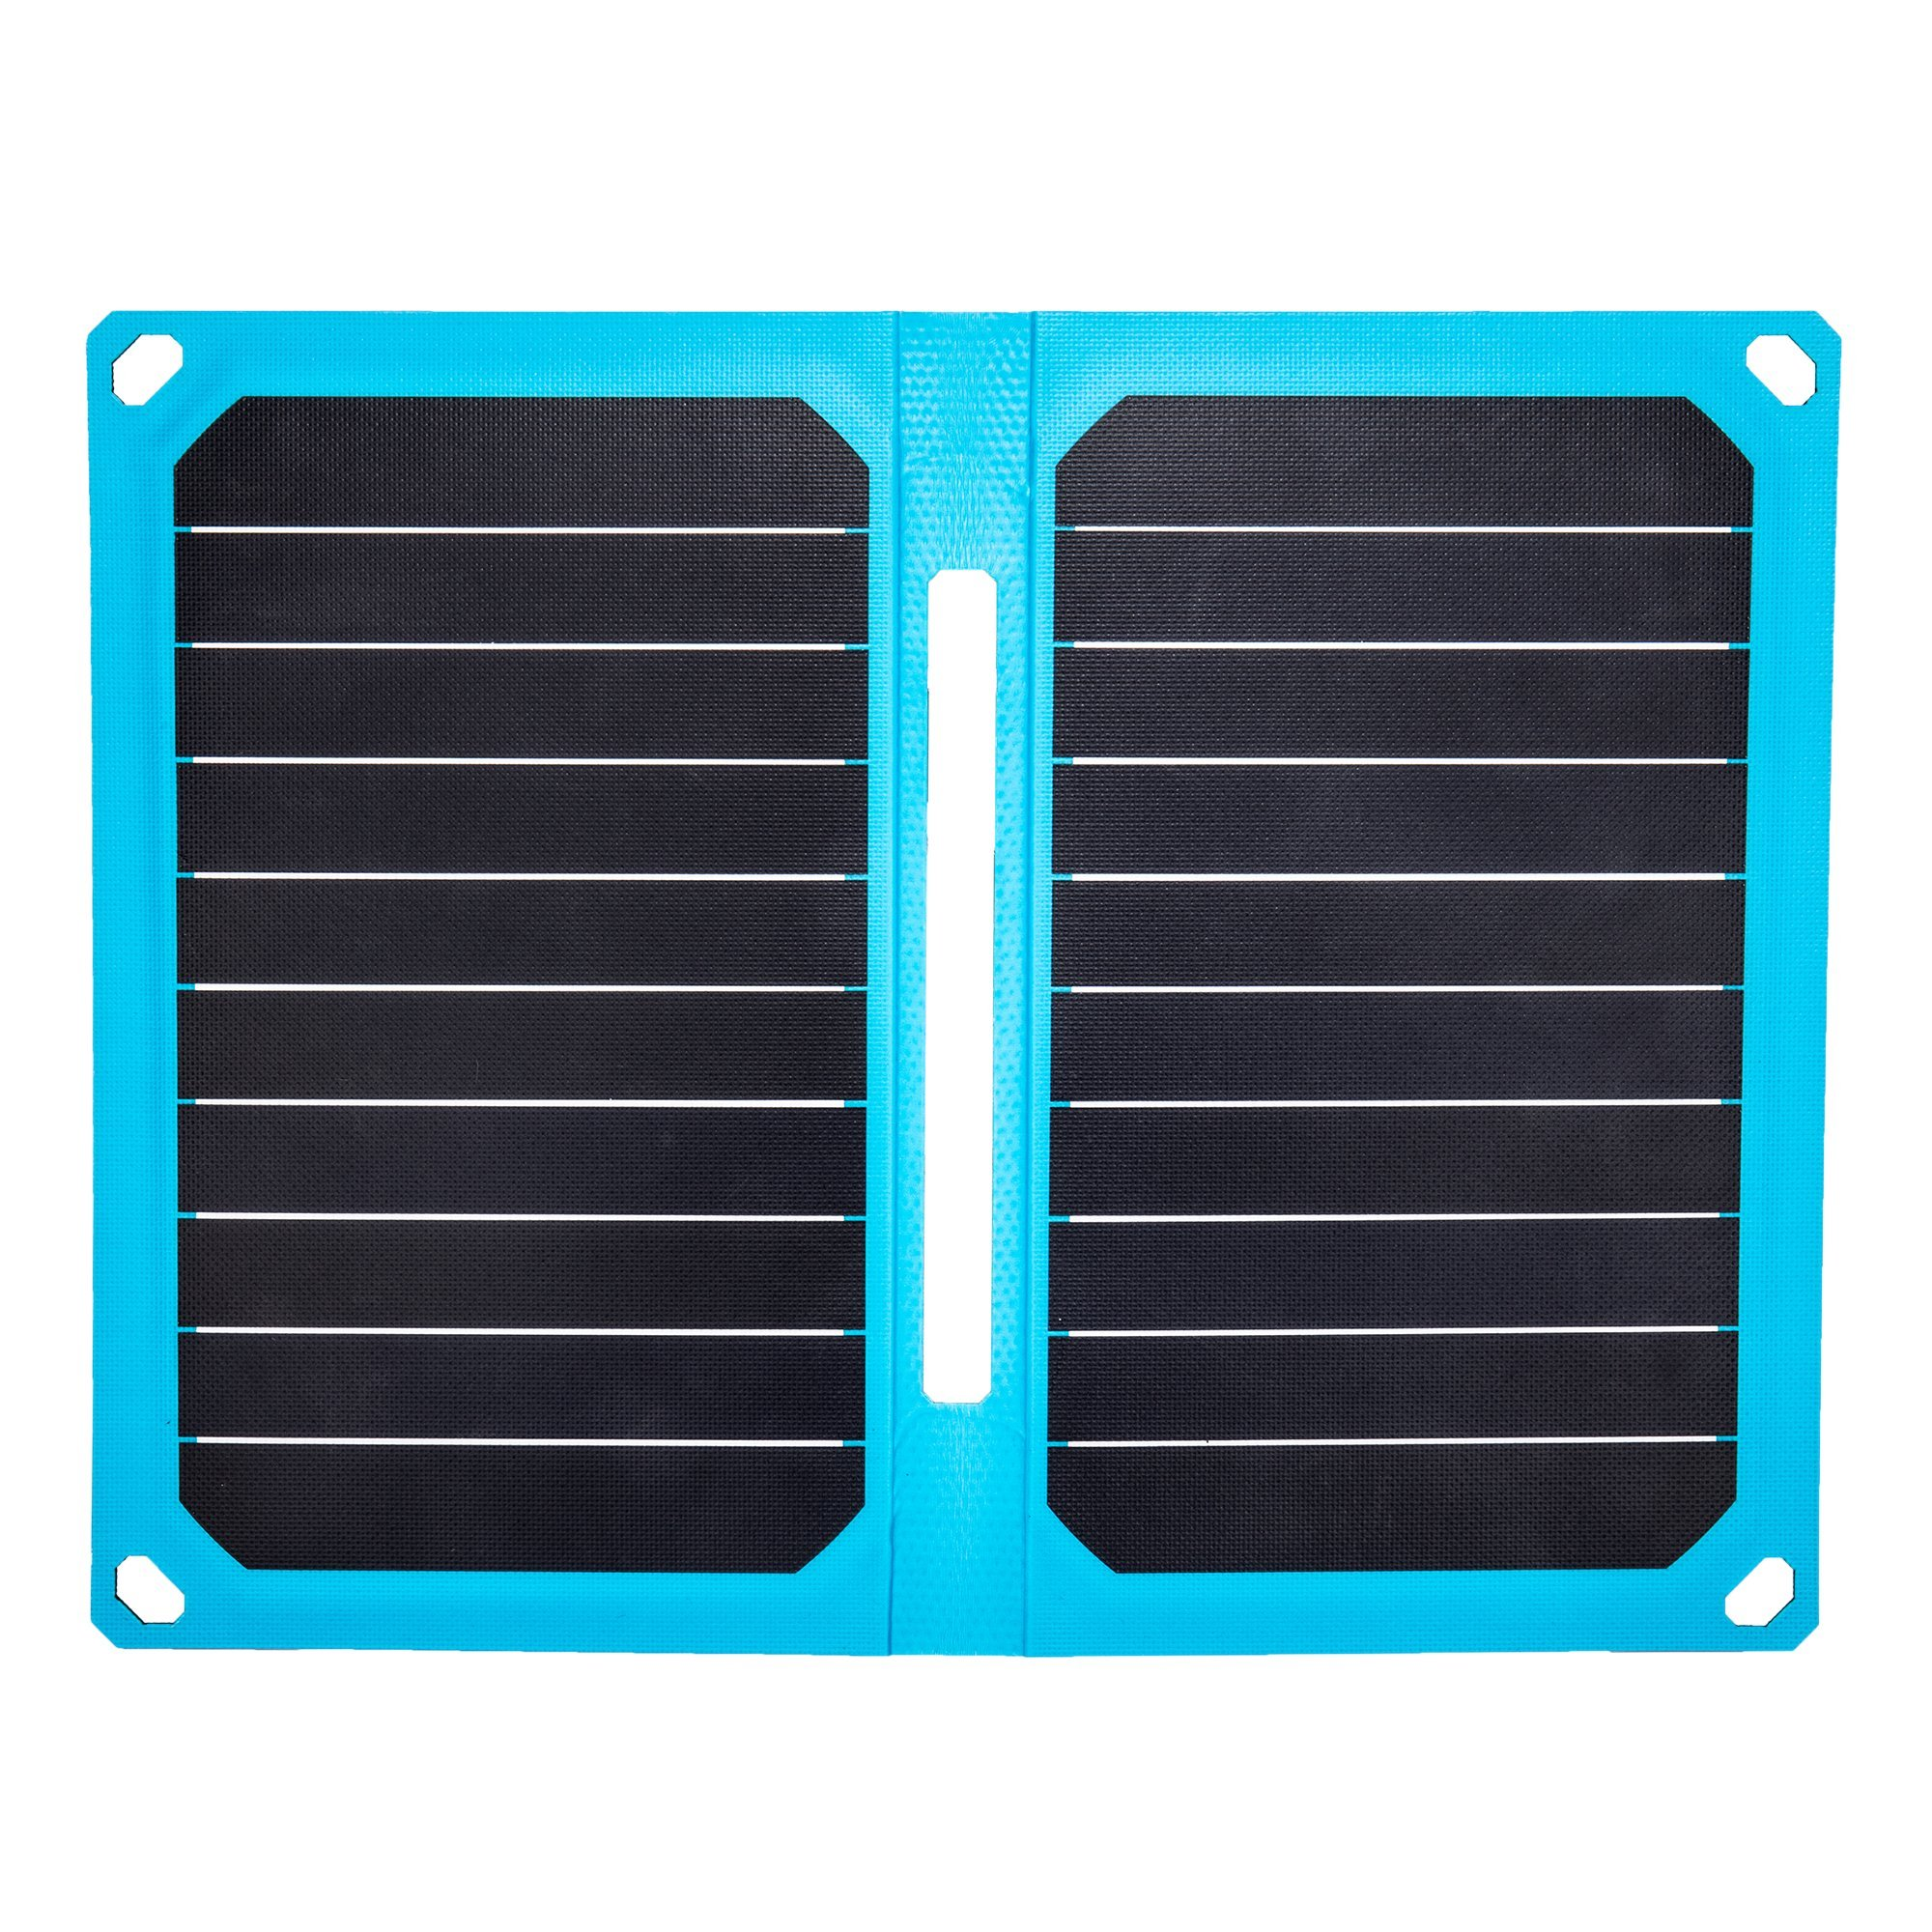 Renogy E.FLEX 10W Ultra Thin Portable Solar Panel Charger with USB Port